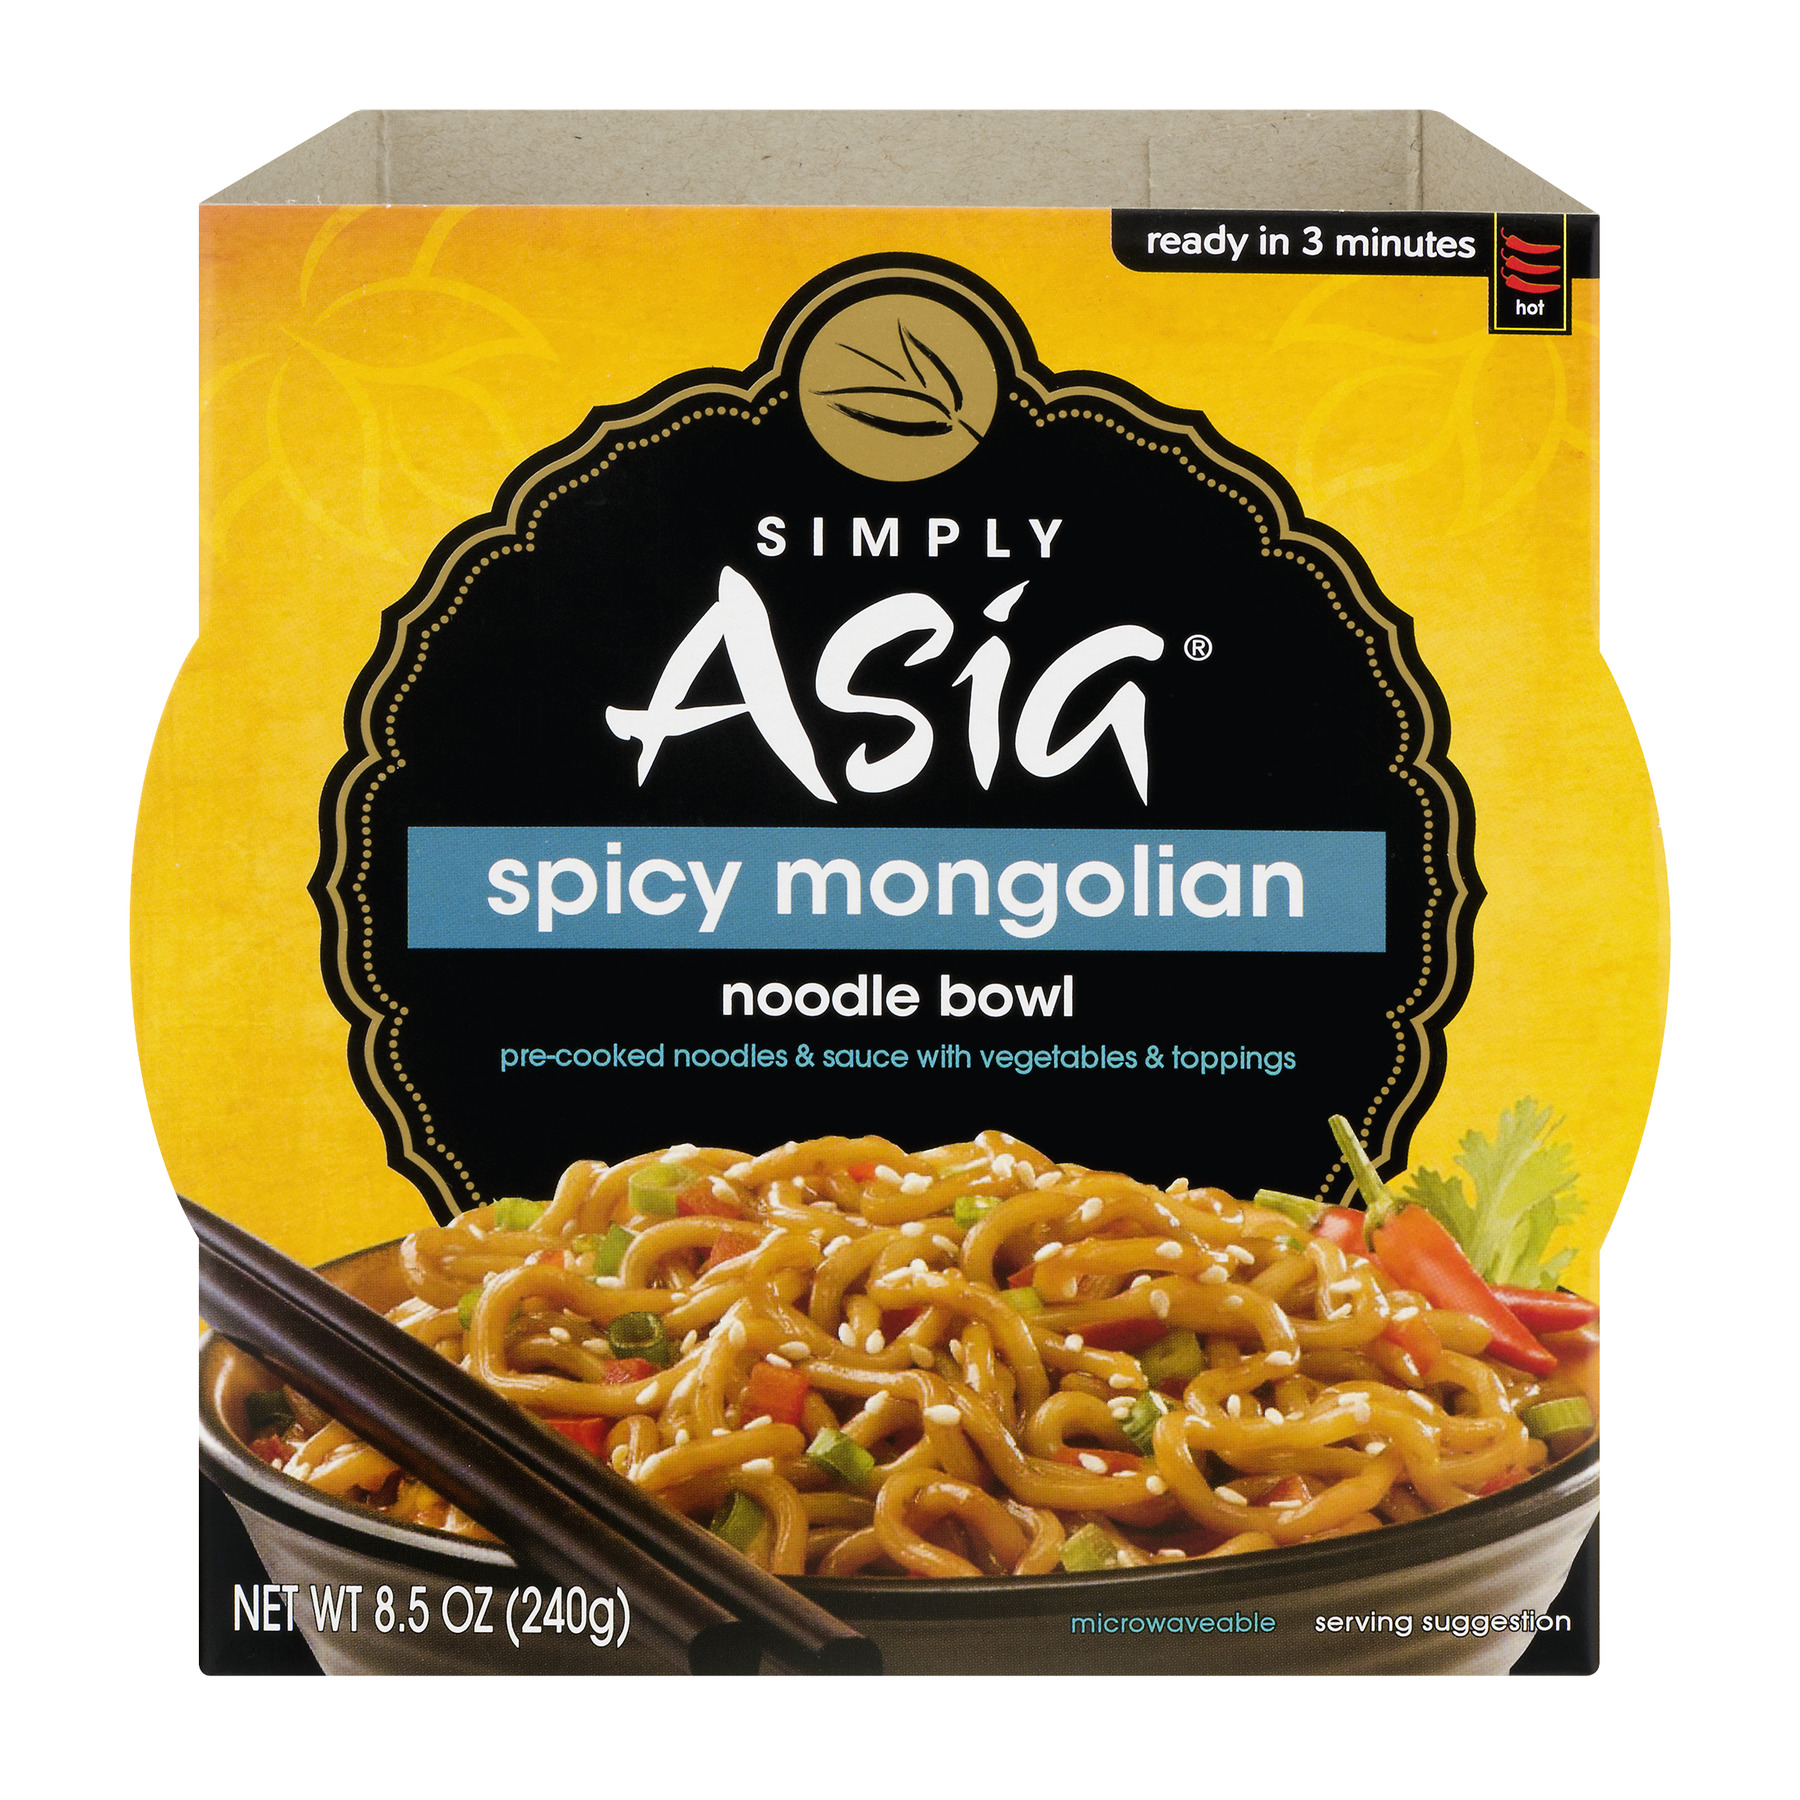 Simply Asia Noodle Bowl Spicy Mongolian, 8.5 OZ